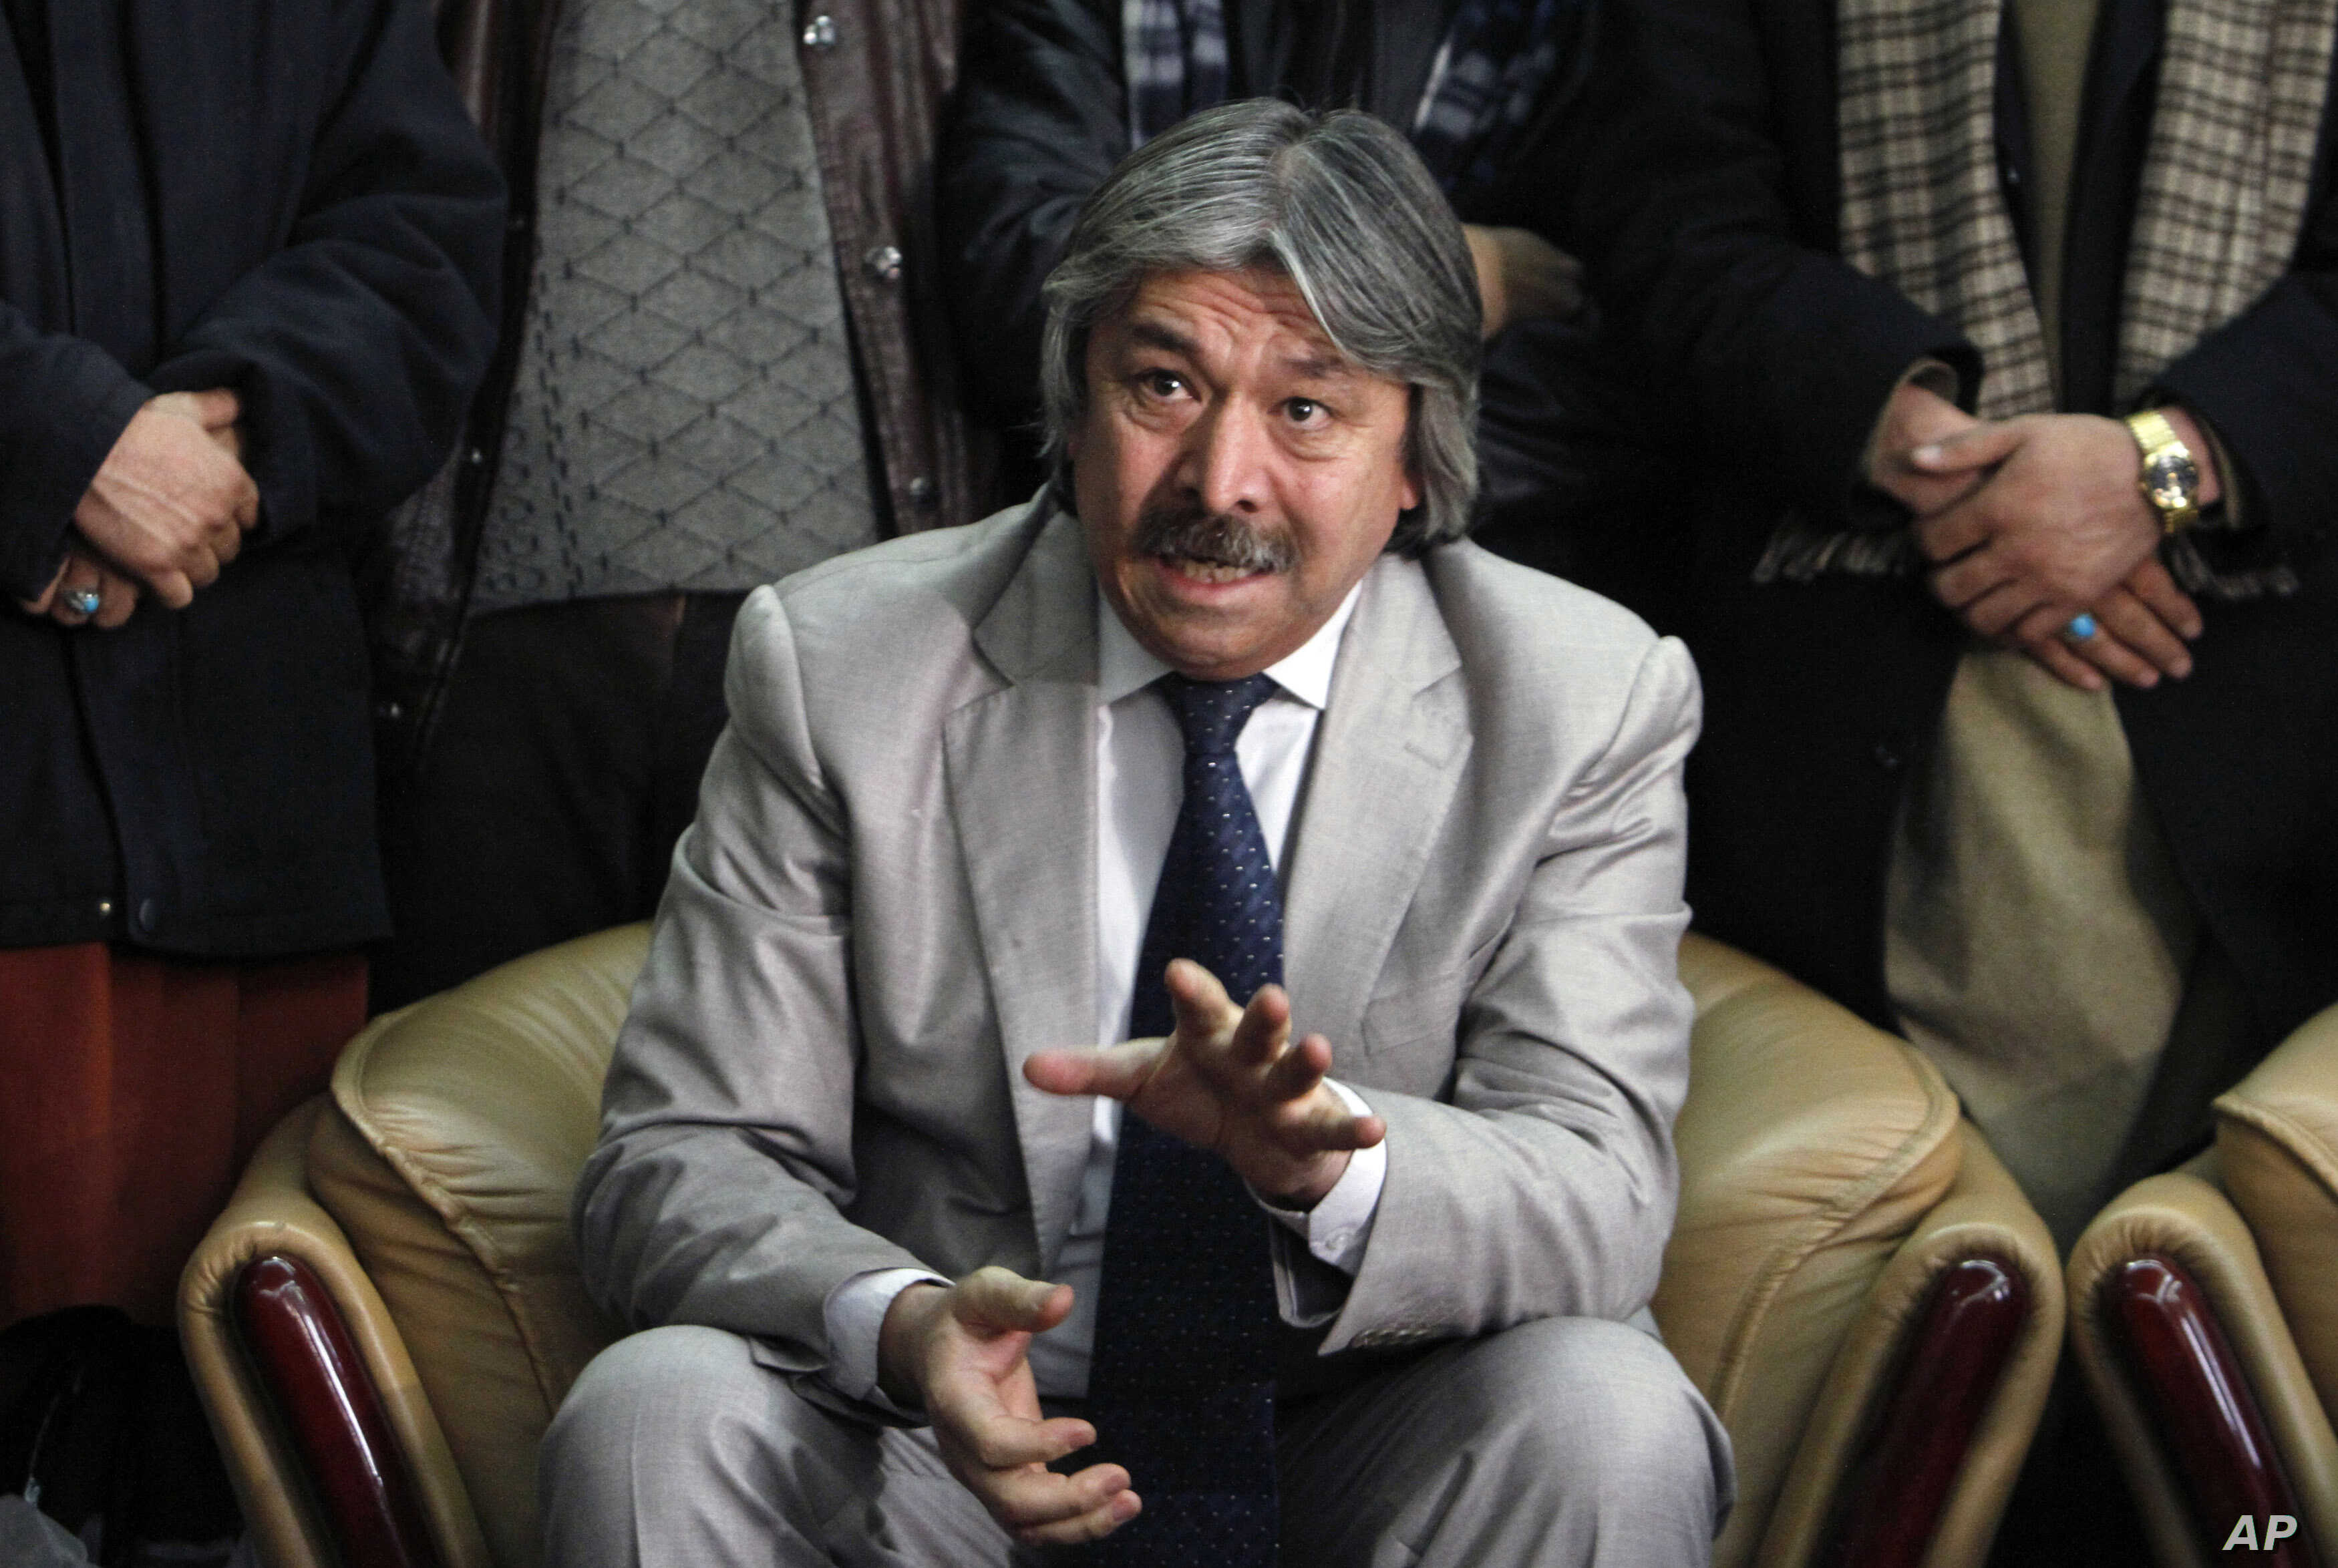 FILE - General Abdul Rashid Dostum speaks during a press conference at the airport in Kabul, Afghanistan, Friday, Jan. 13, 2012.